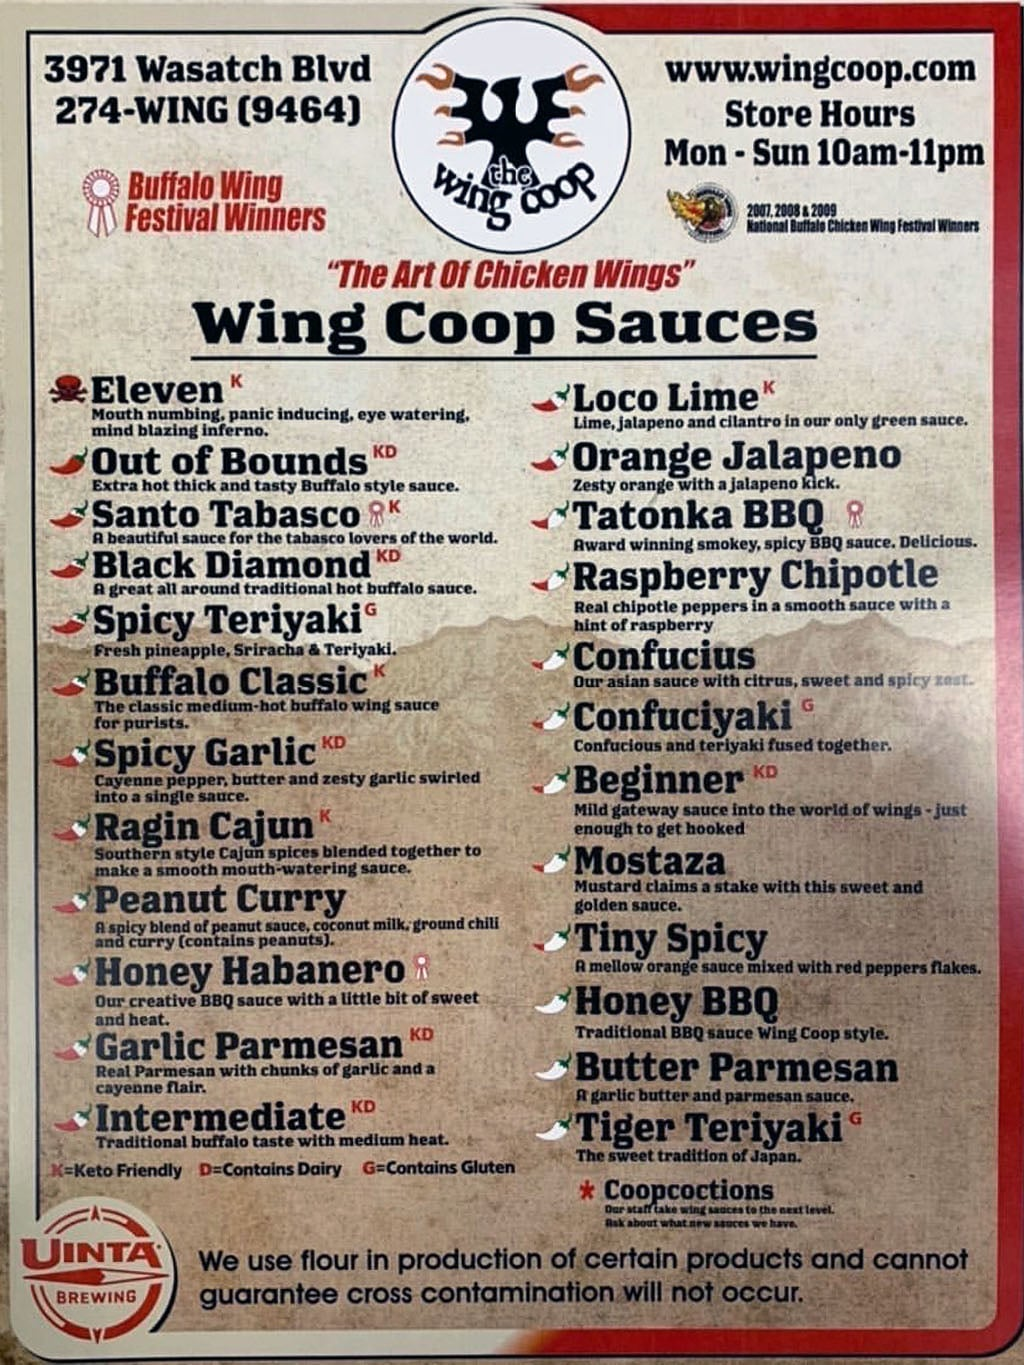 Wing Coop menu - Wing Coop sauces